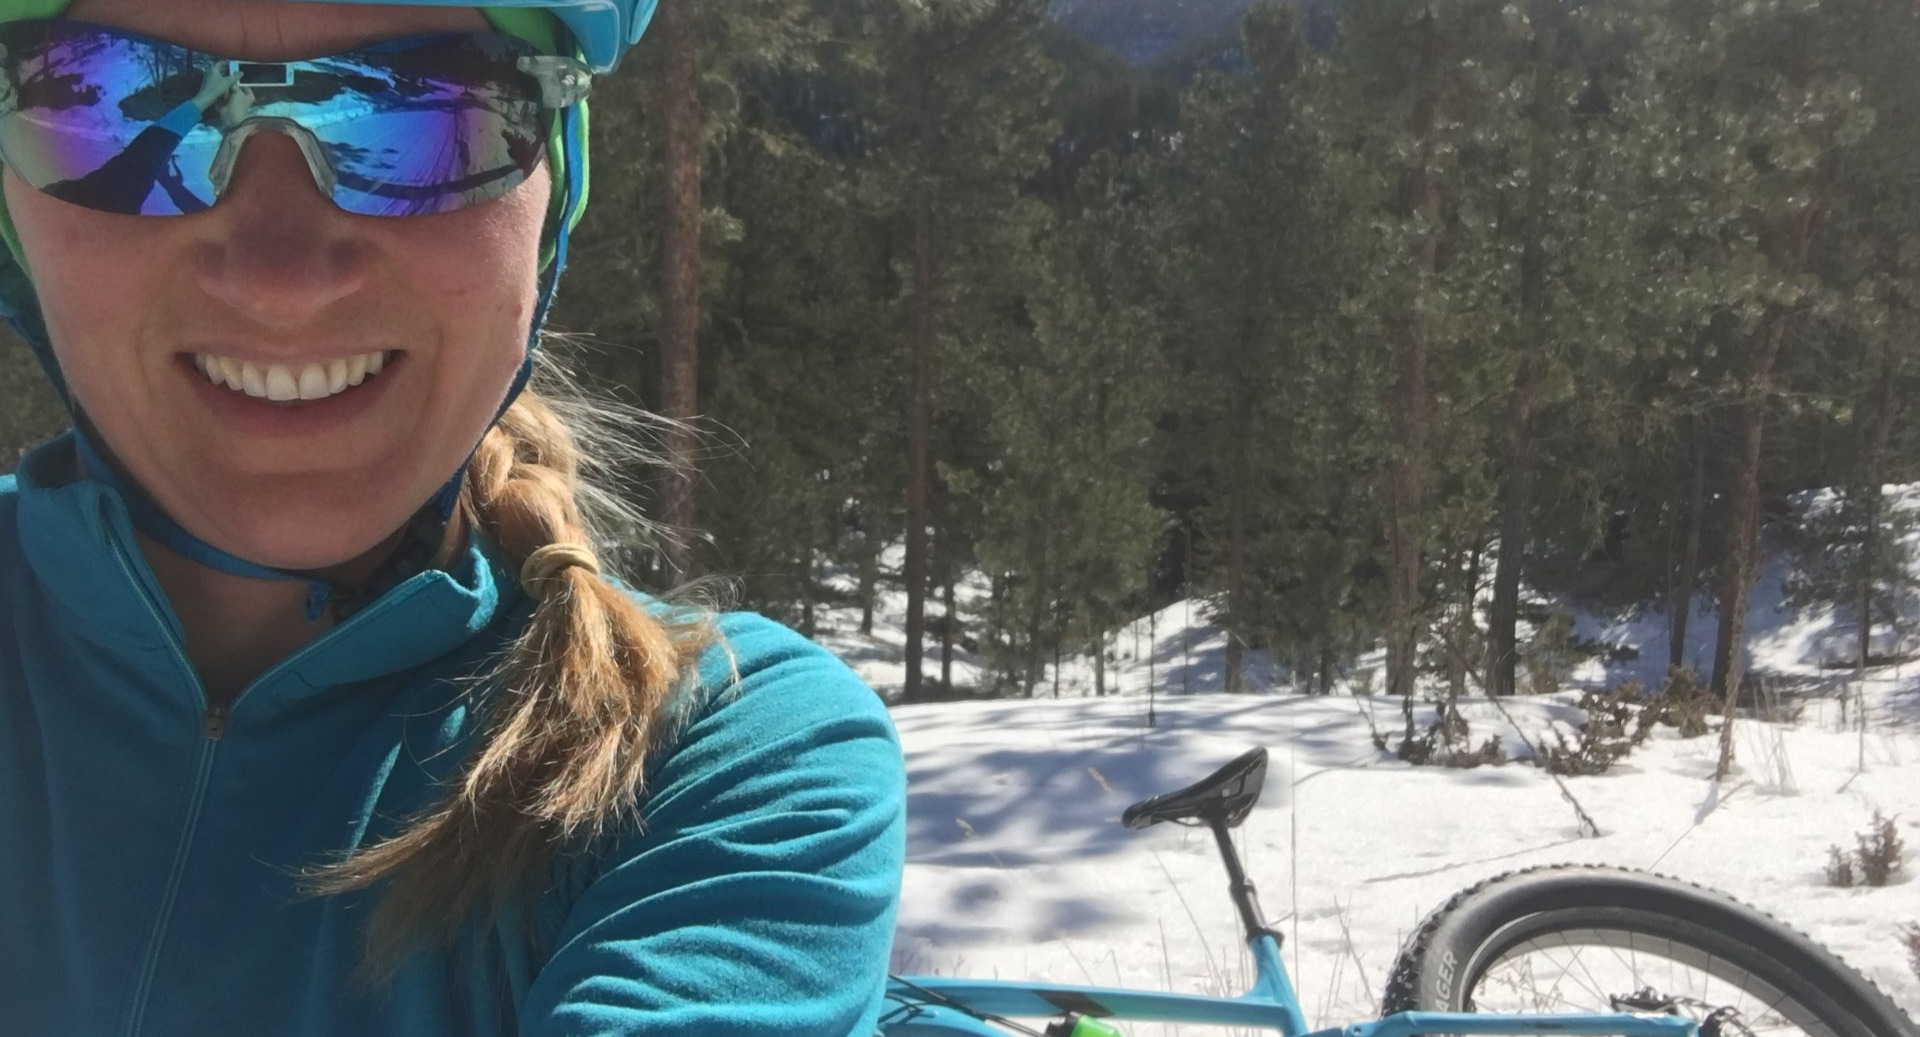 Selfie of a woman mountain biker and her bike in the snow.